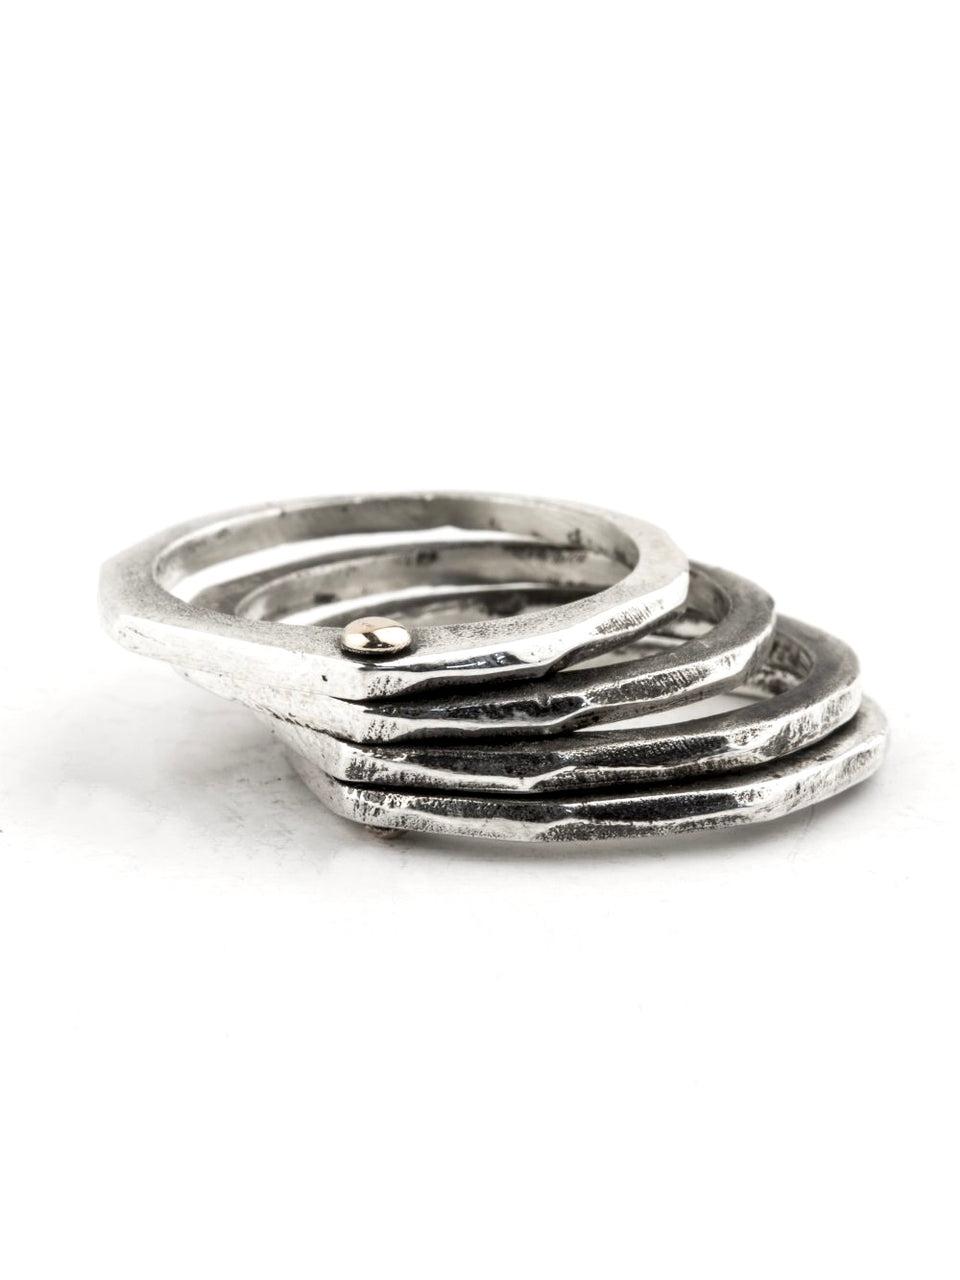 Henson Shakudo Linked Ring Set